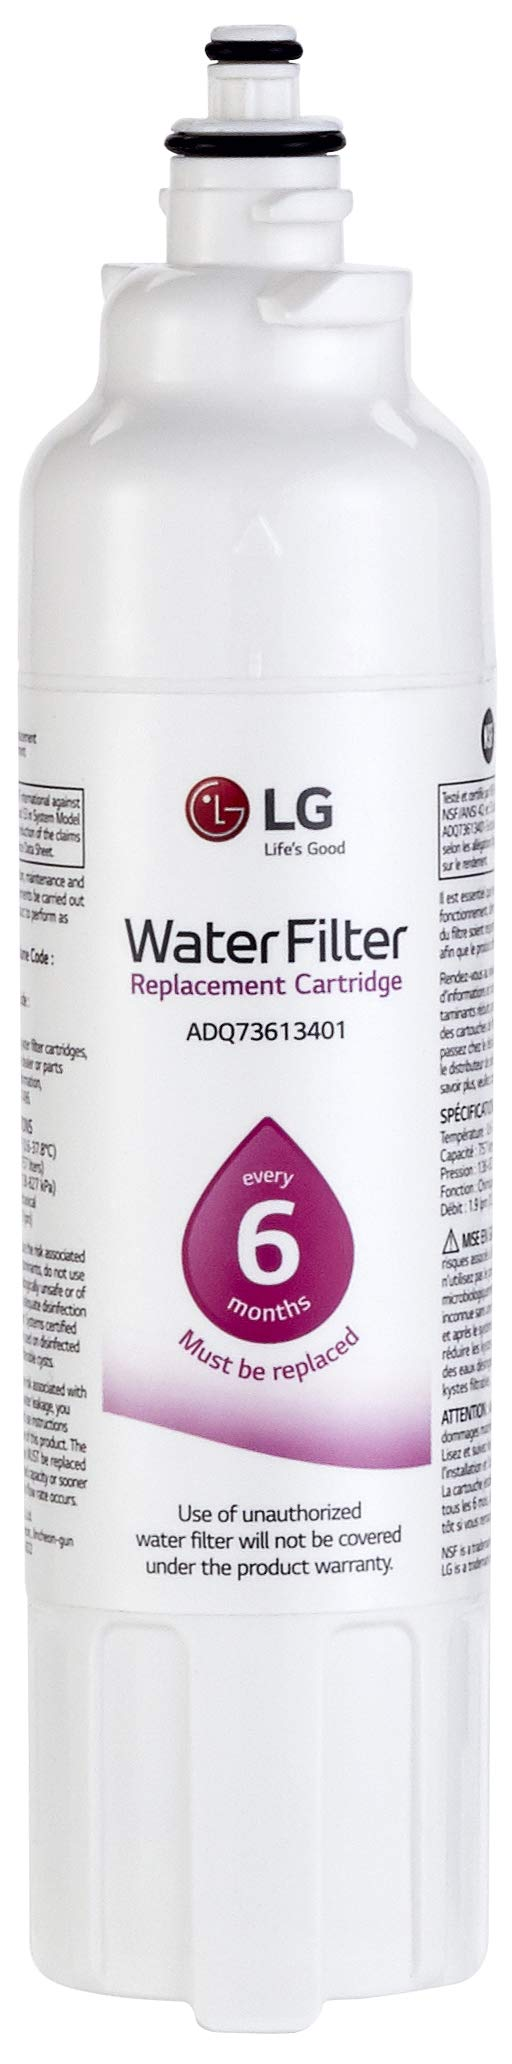 LG LT800P Refrigerator Water Filter, Filters up to 200 Gallons of Water, Compatible with Select LG French Door and Side-by-Side Refrigerators with SlimSpace Plus Ice System by LG